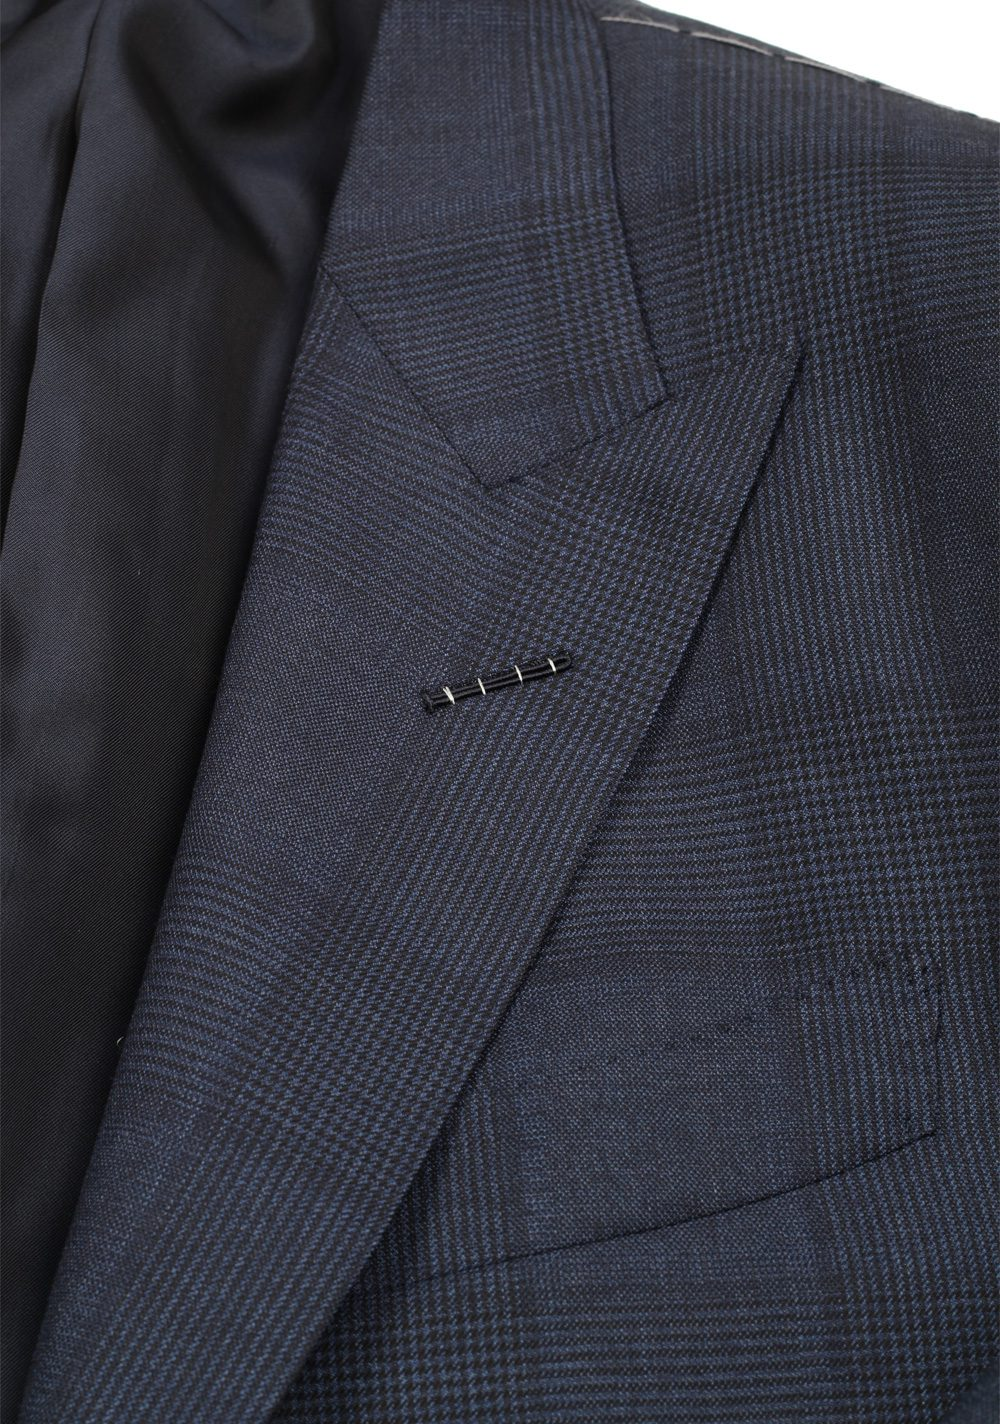 TOM FORD O'Connor Blue Suit Size 46C / 36S U.S. | Costume Limité